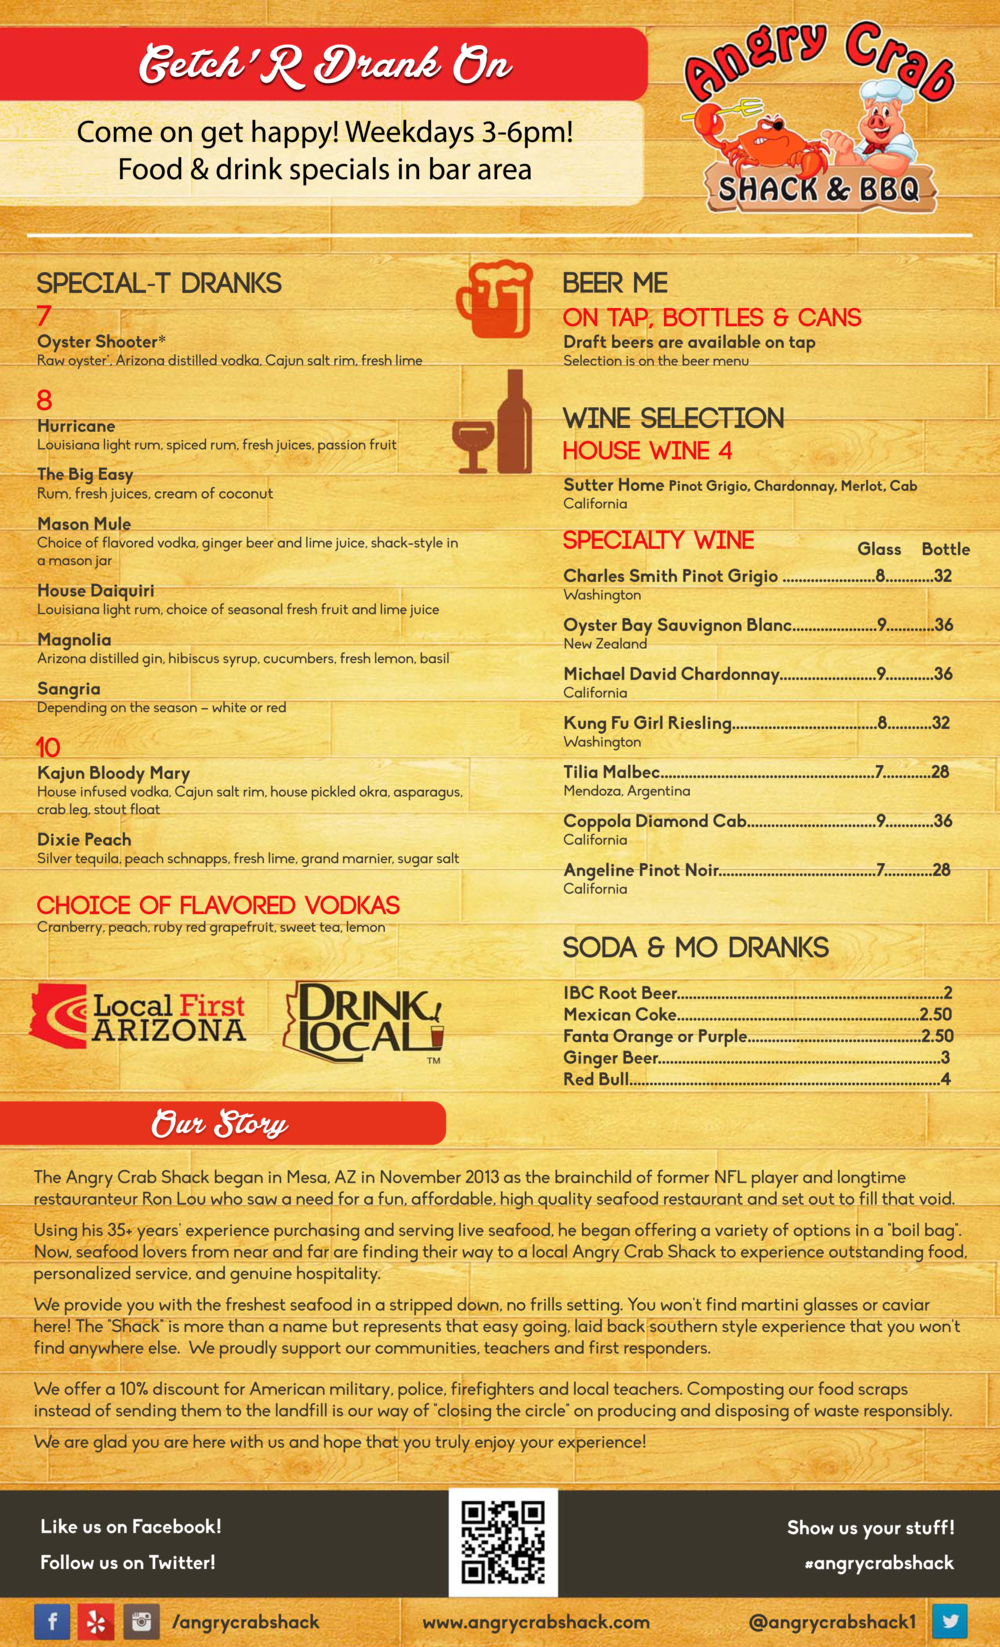 Angry Crab Shack - Phoenix - Beer Wine Menu